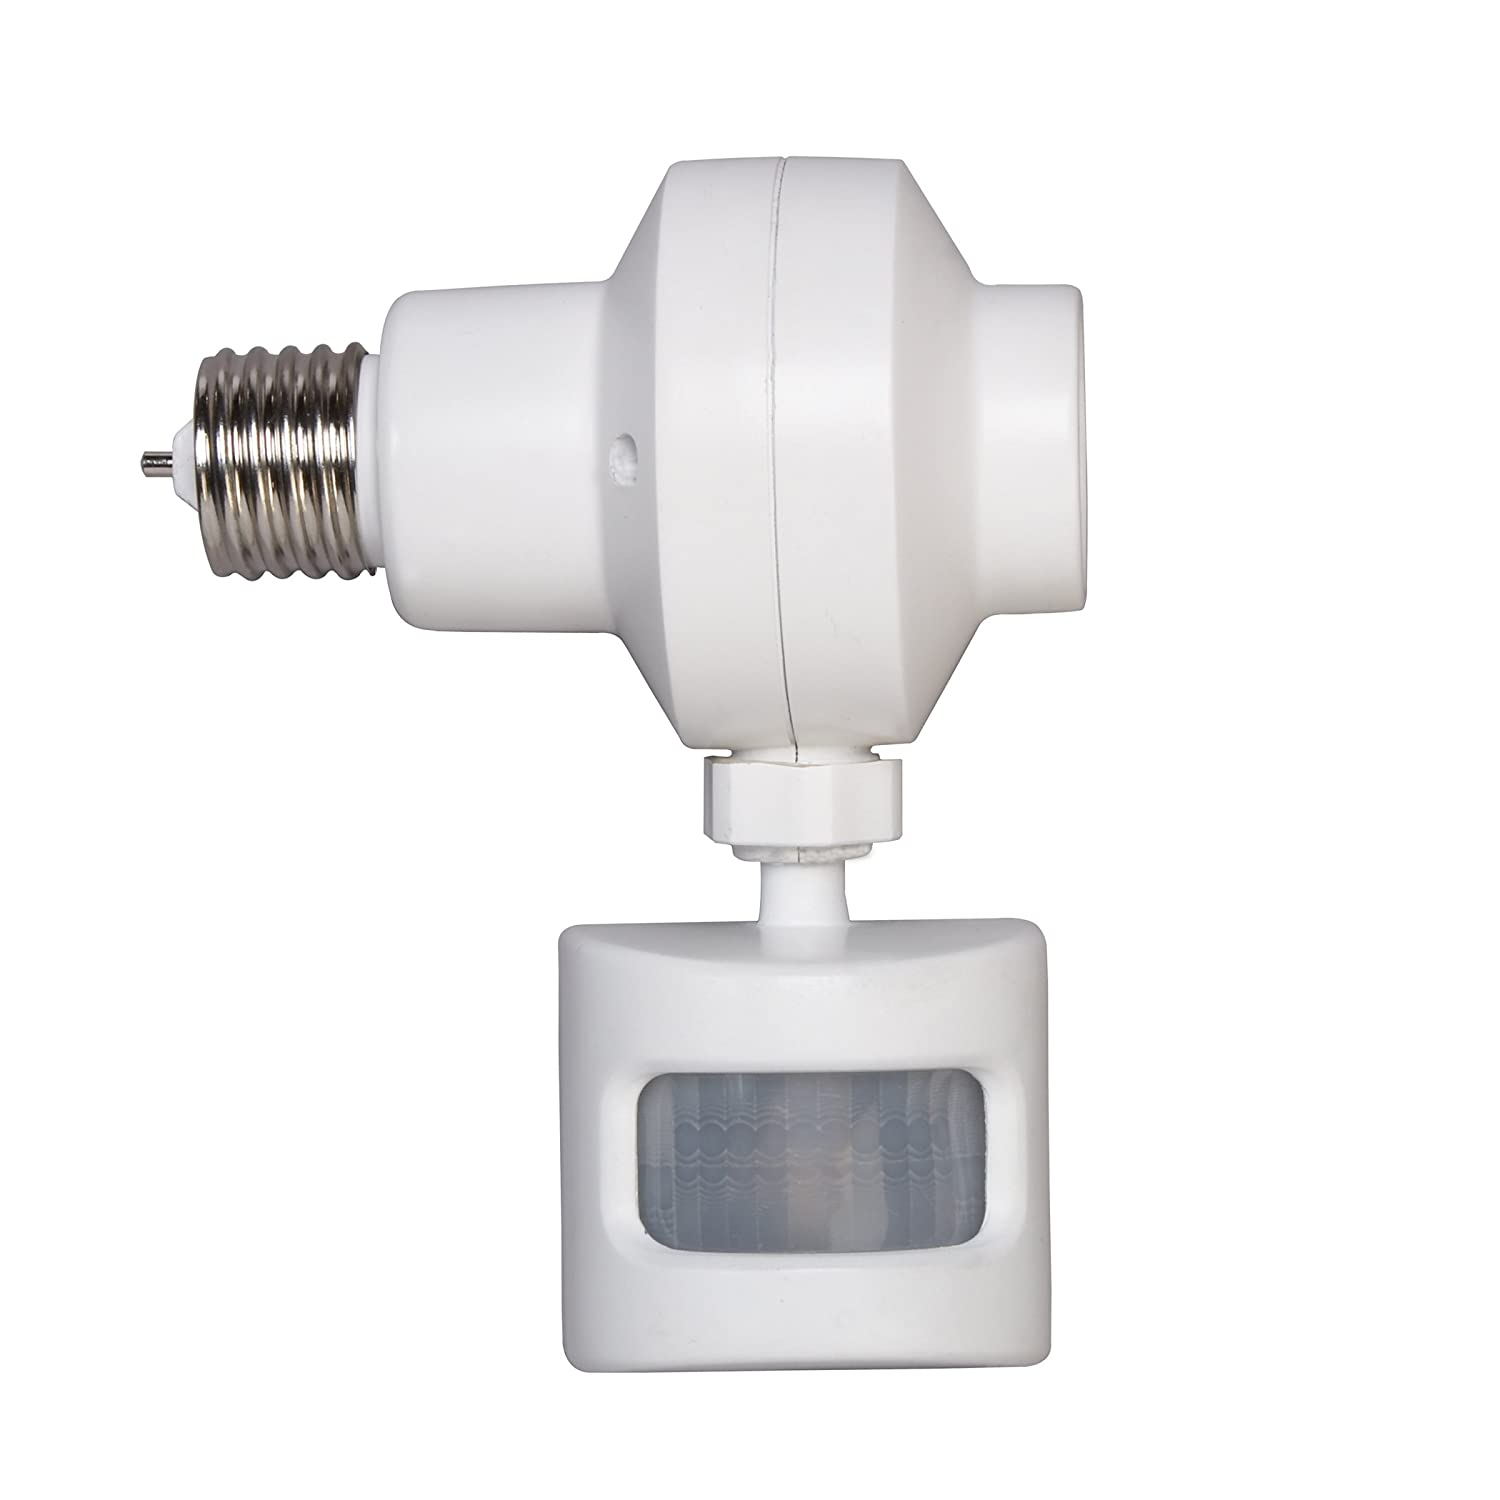 Fresh Outdoor Lighting with Motion Sensor